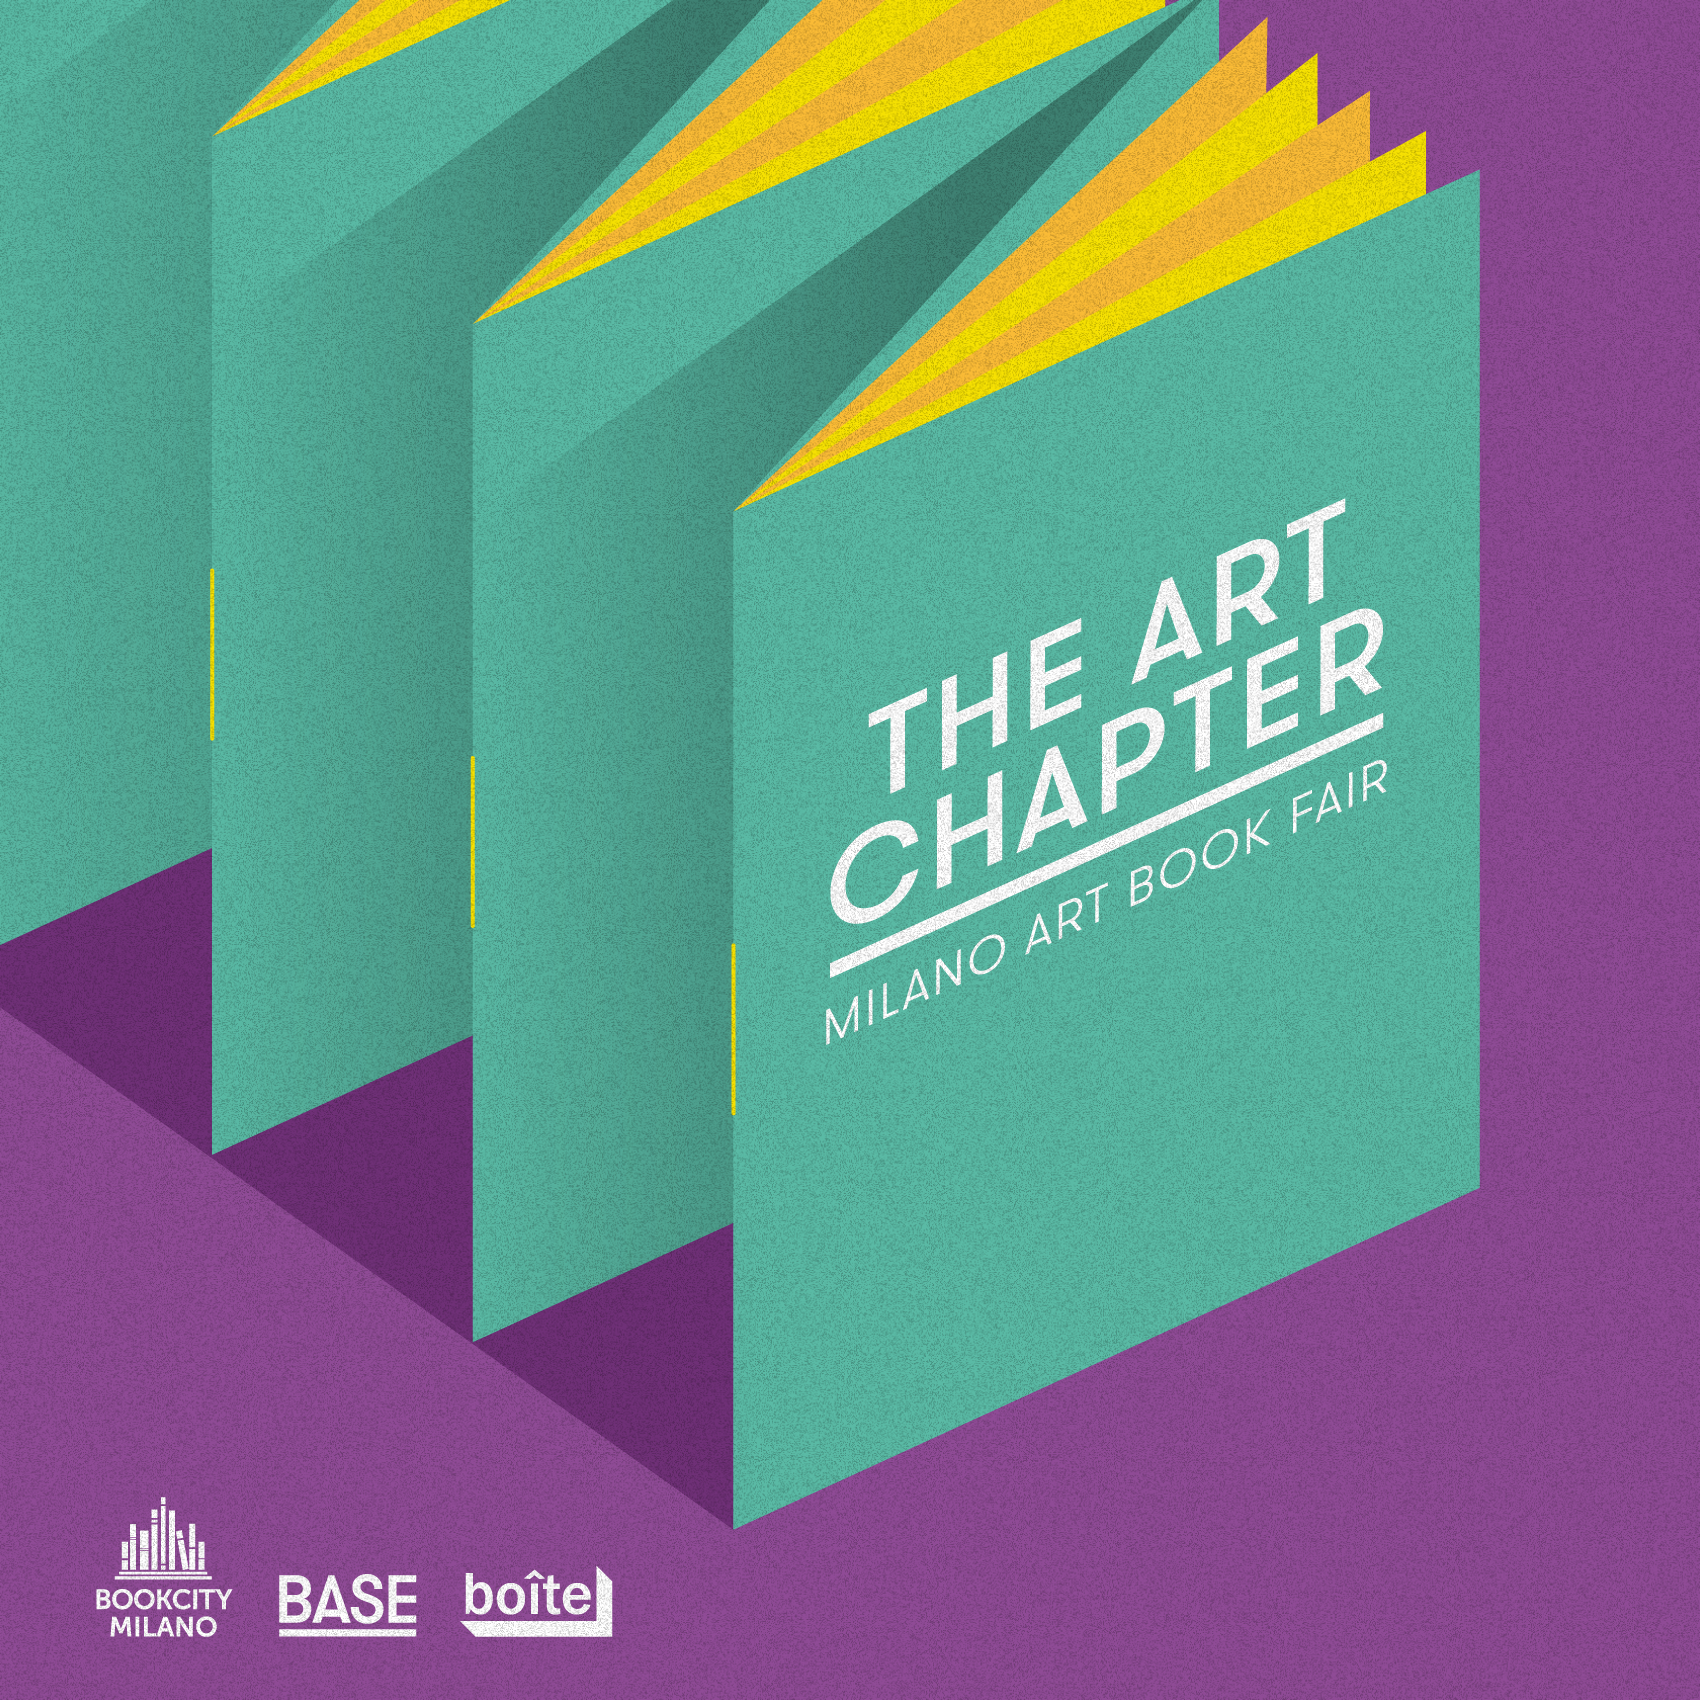 THE ART CHAPTER